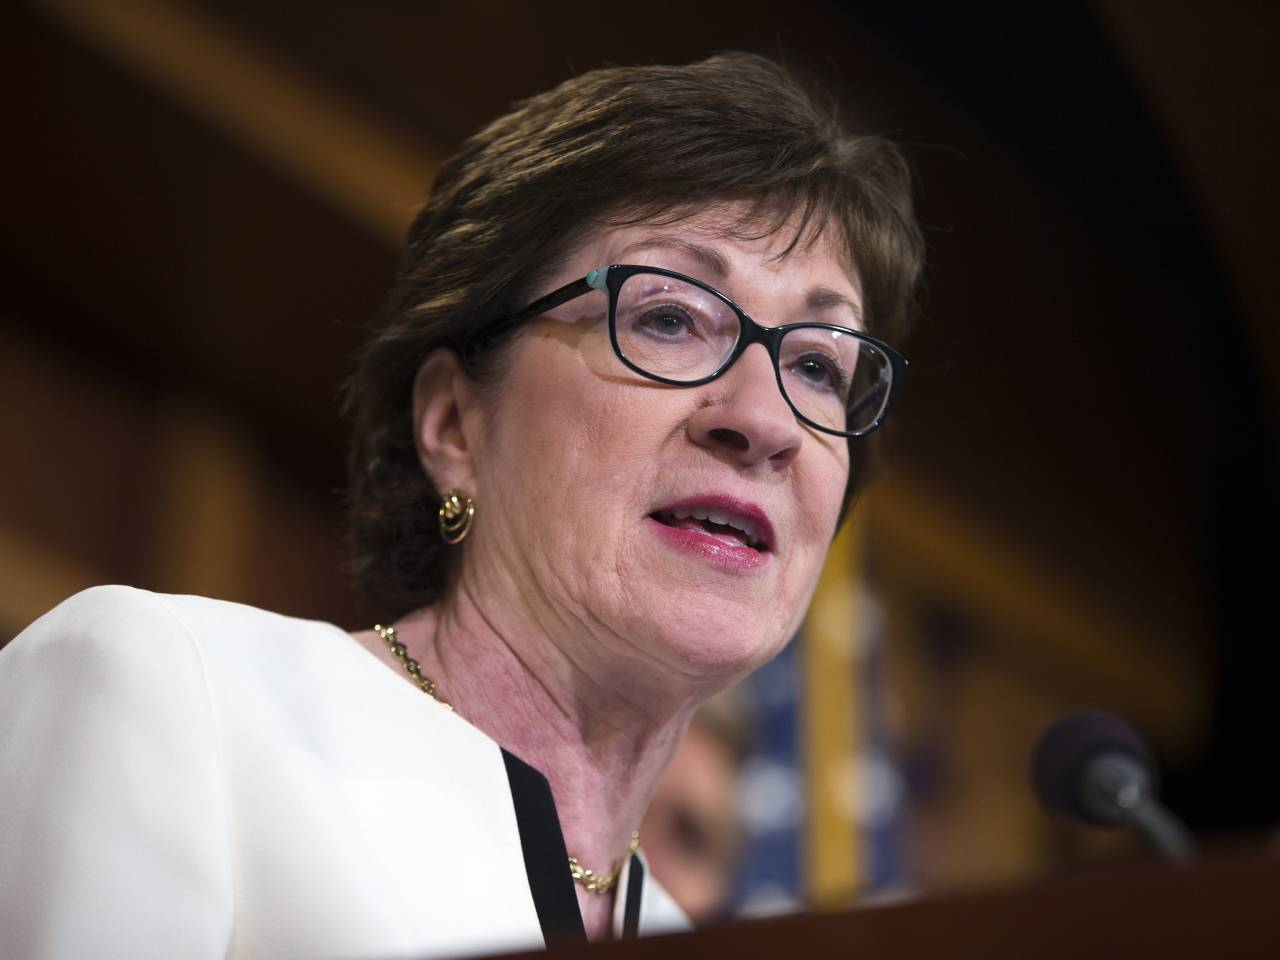 Collins recounts 'heartwarming' welcome in ME after healthcare 'no' vote